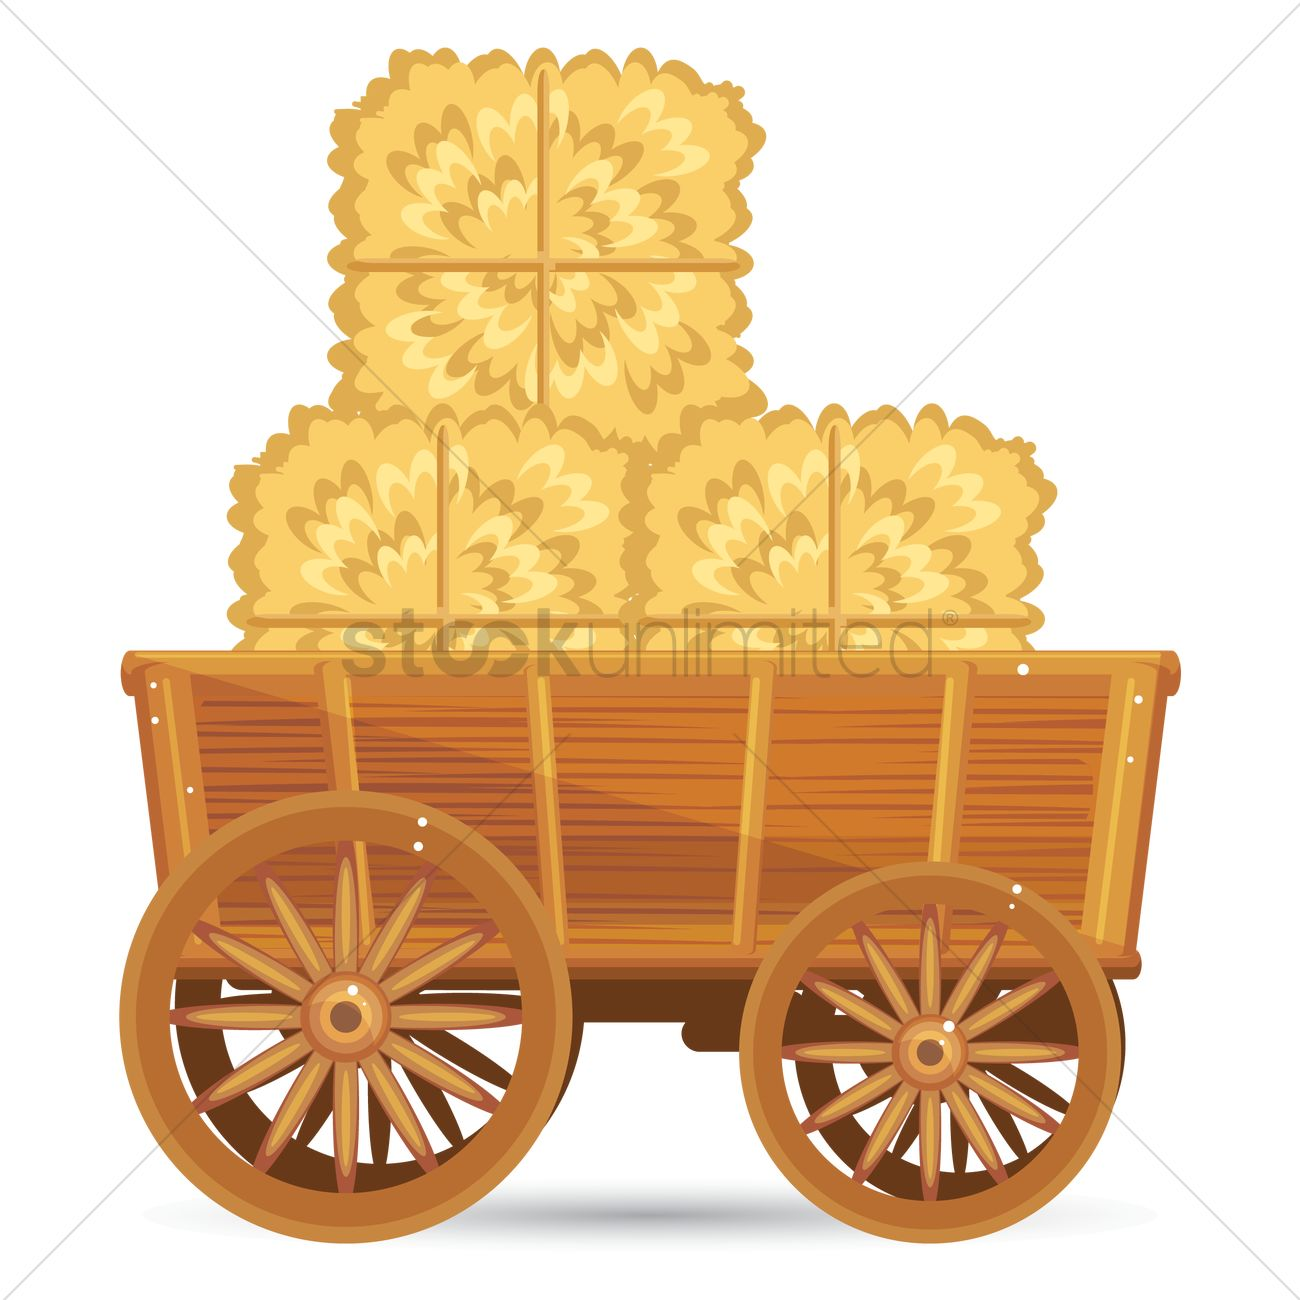 Hay Bale Clip Art : Straw bale clipart clipground